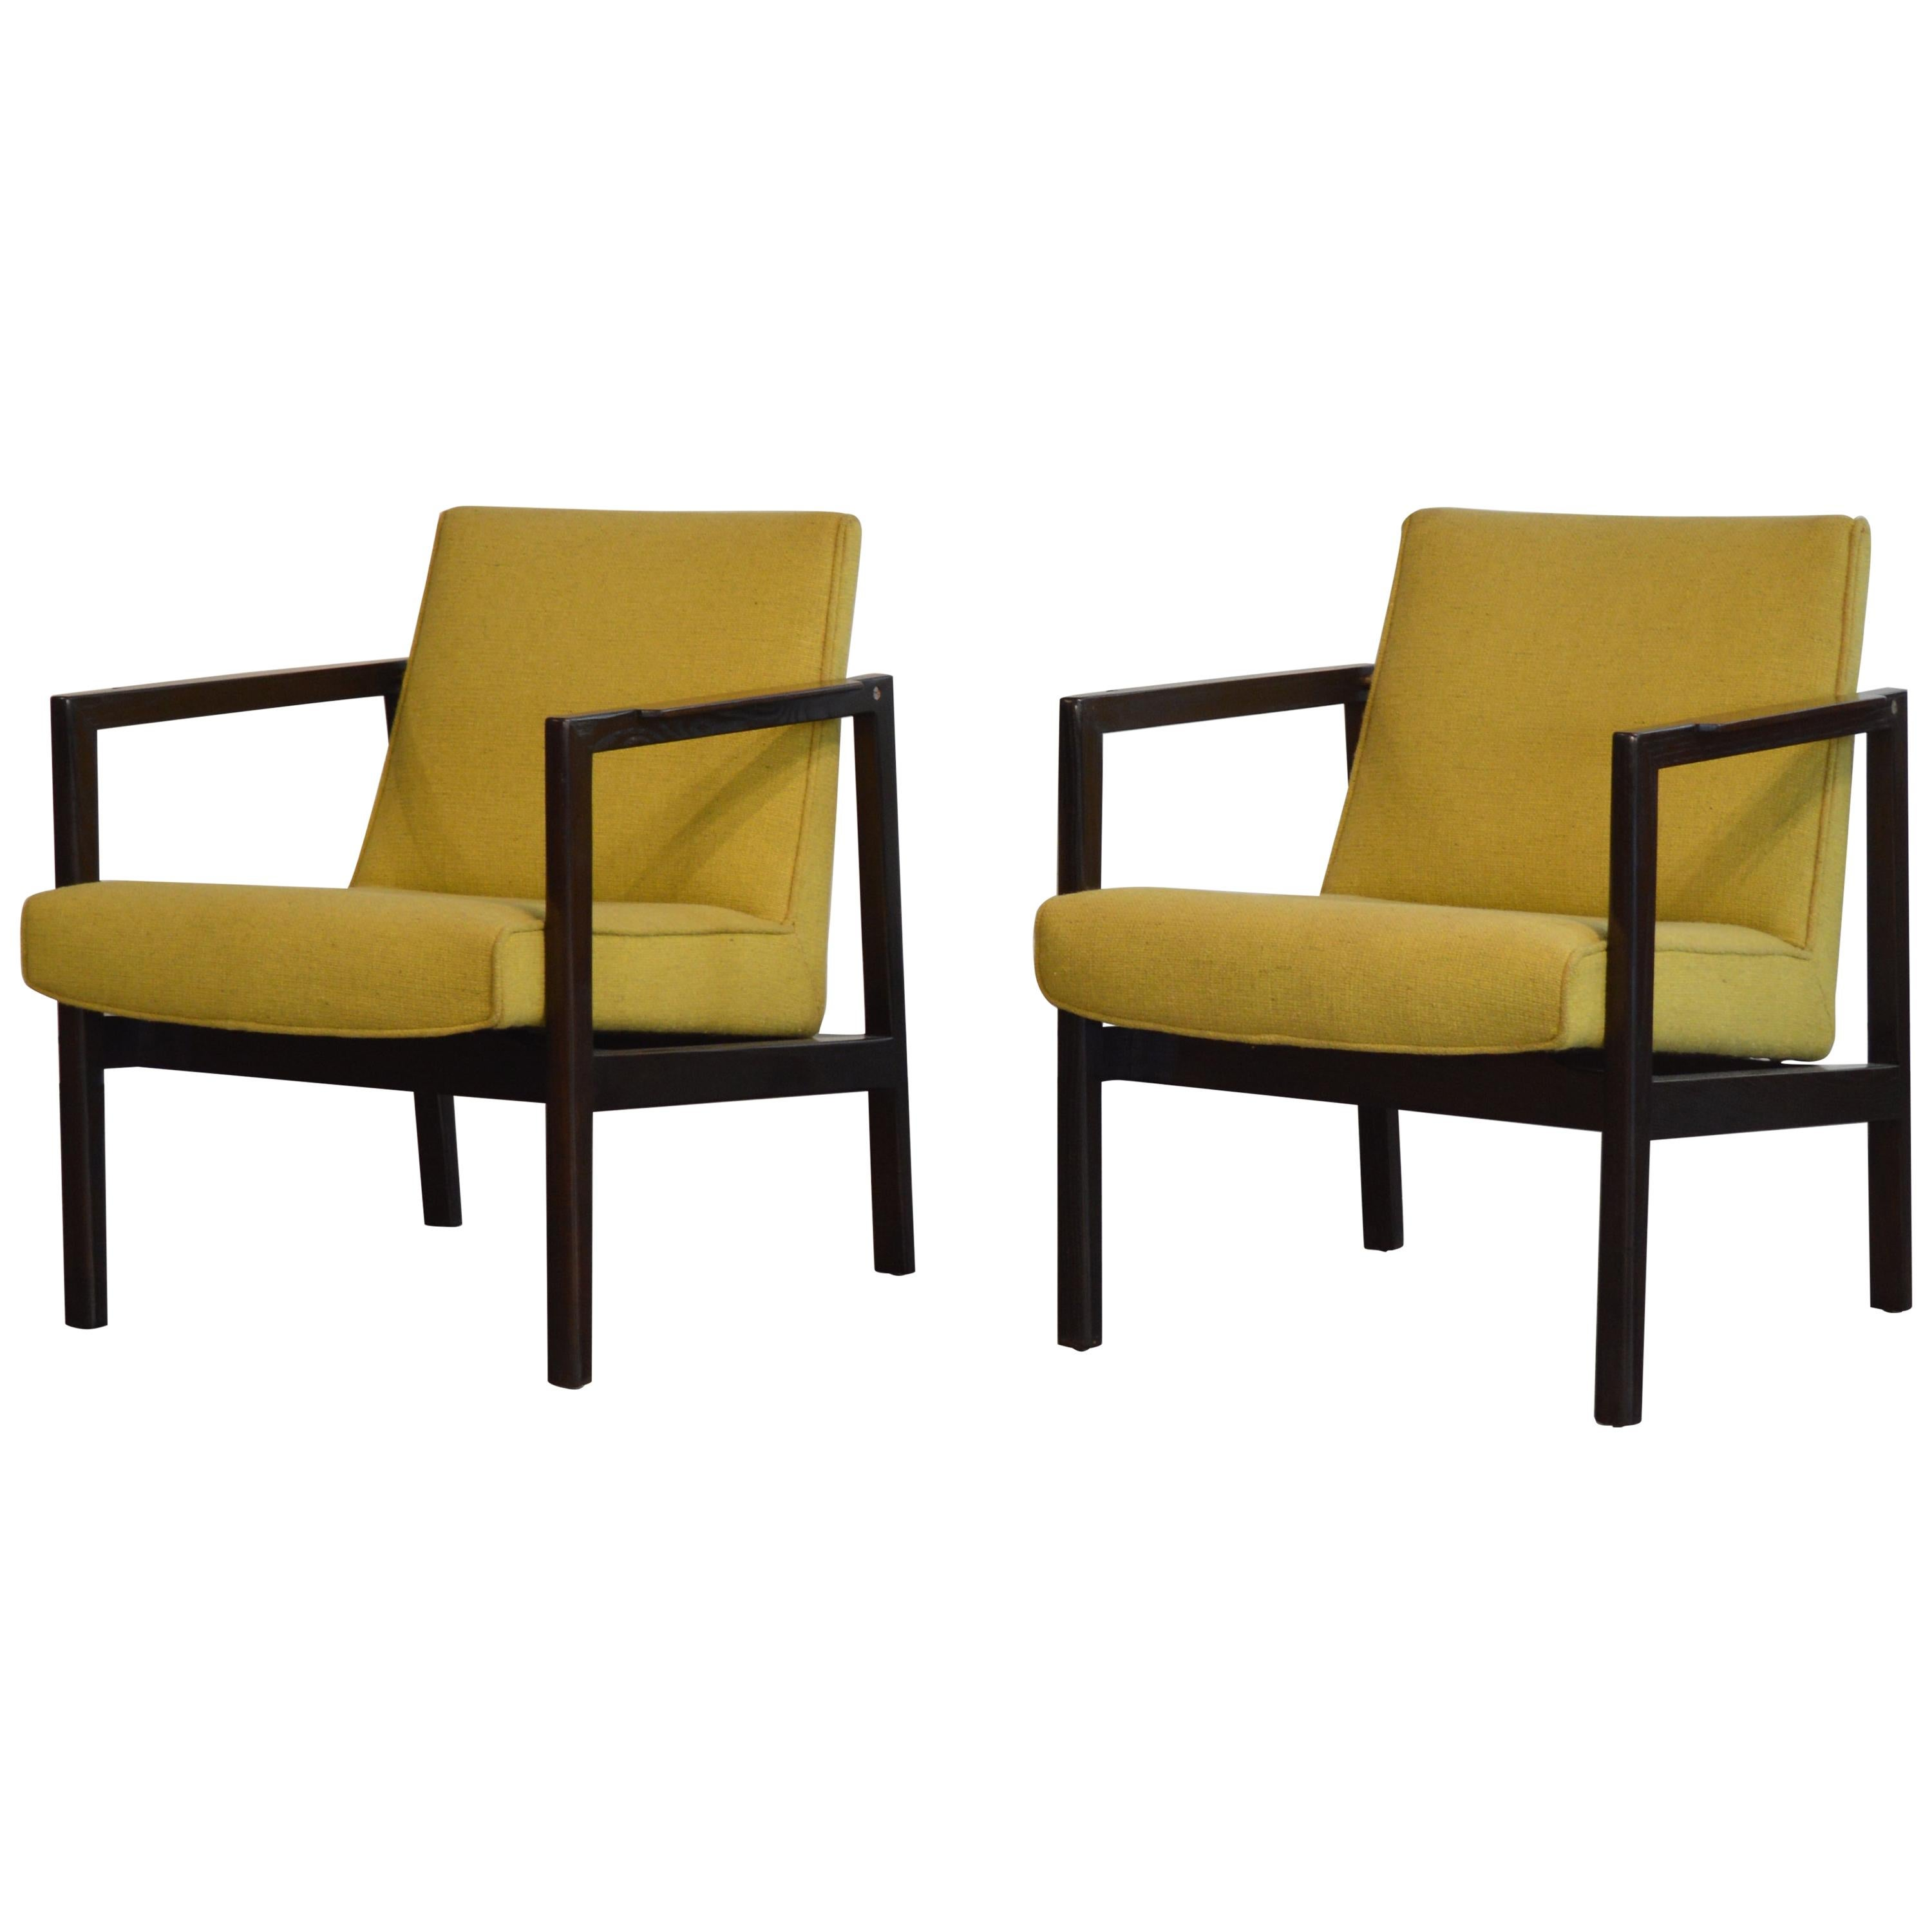 Edward Wormley Mahogany and Rosewood Open Frame Lounge Chairs for Dunbar